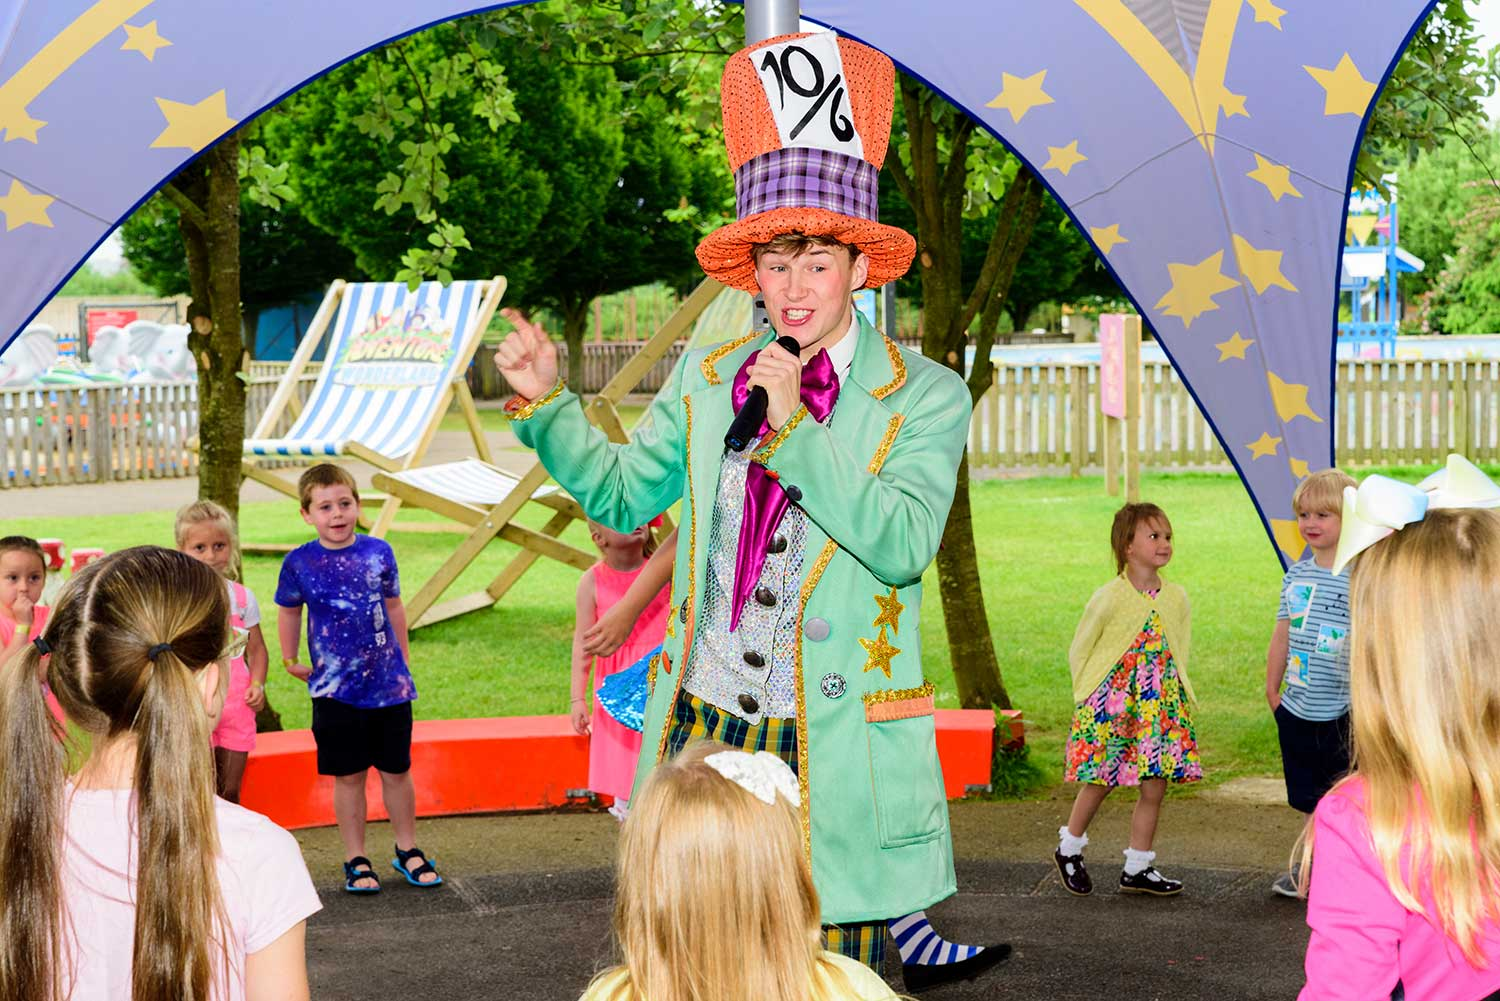 The Mad Hatter - children's entertainment at Adventure Wonderland